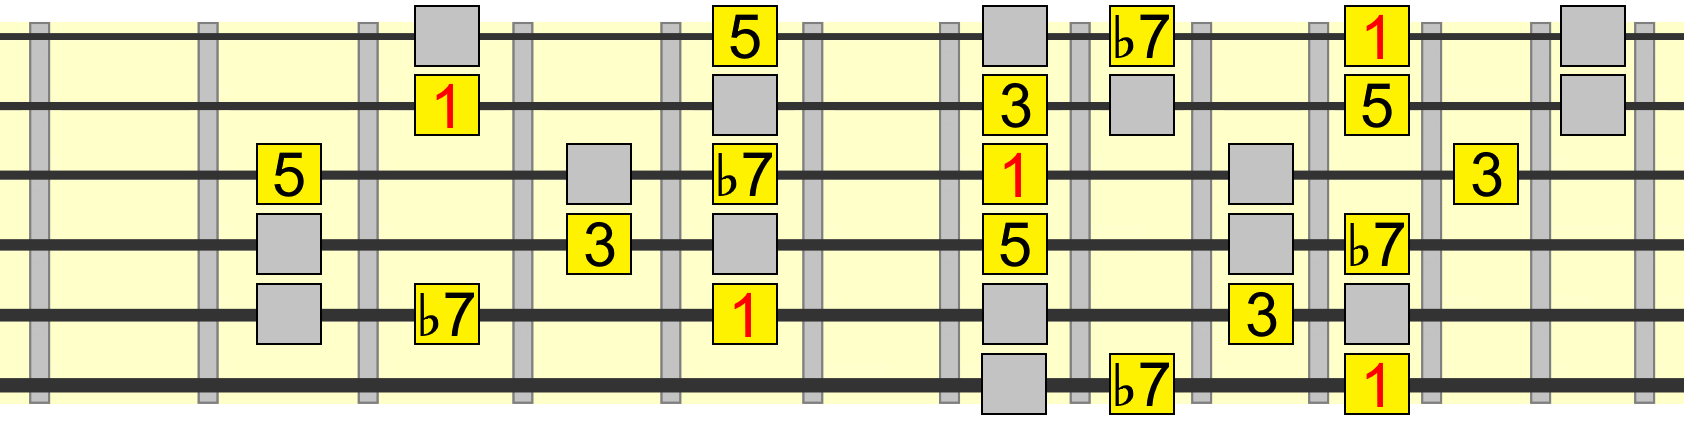 5 chord tones within mixolydian